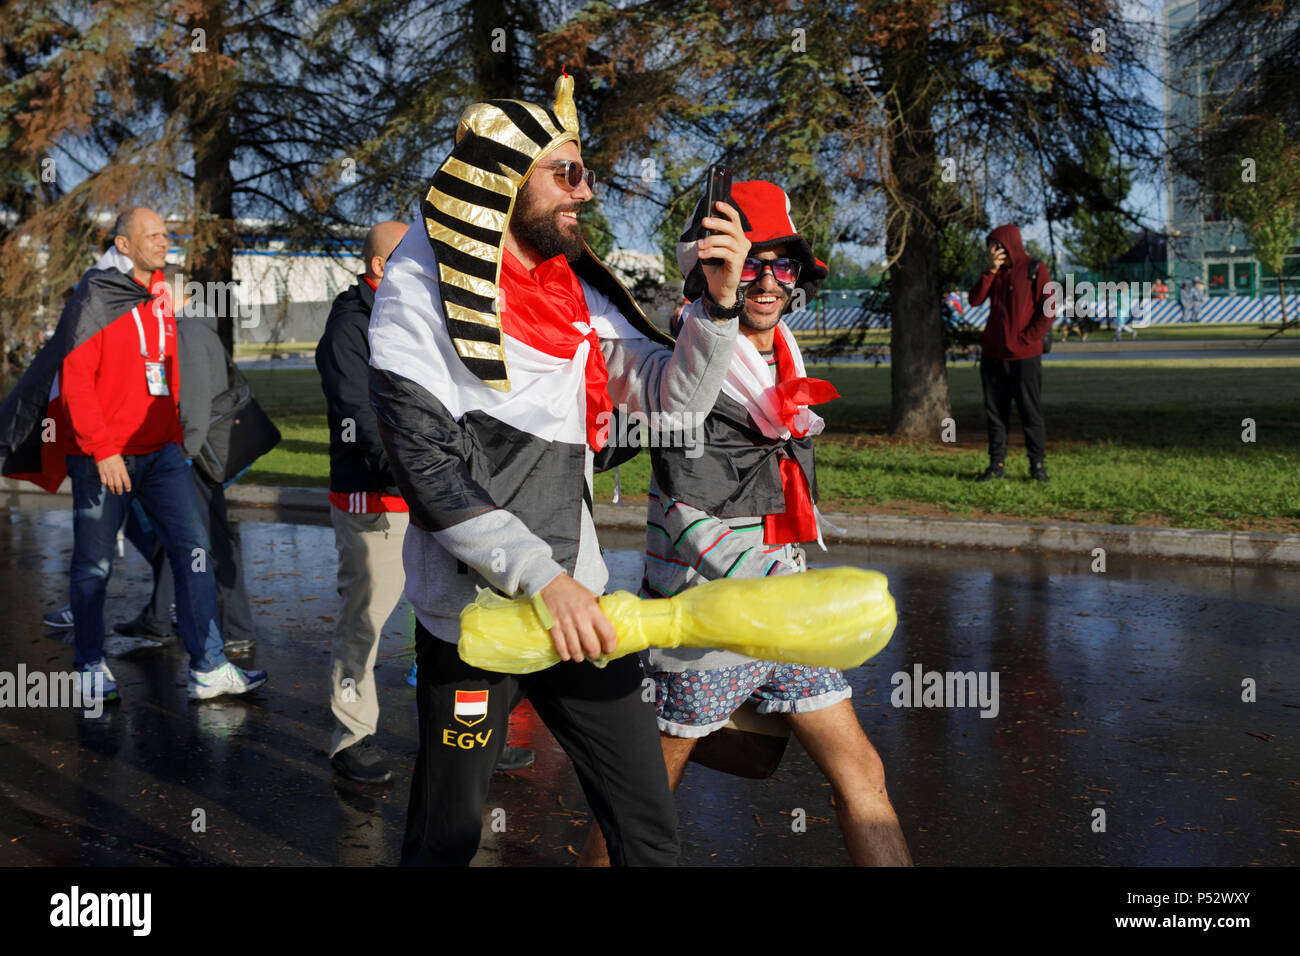 St. Petersburg, Russia - June 19, 2018: Egyptian football fans make selfie at Saint Petersburg Stadium before the FIFA World Cup 2018 match Russia vs  - Stock Image